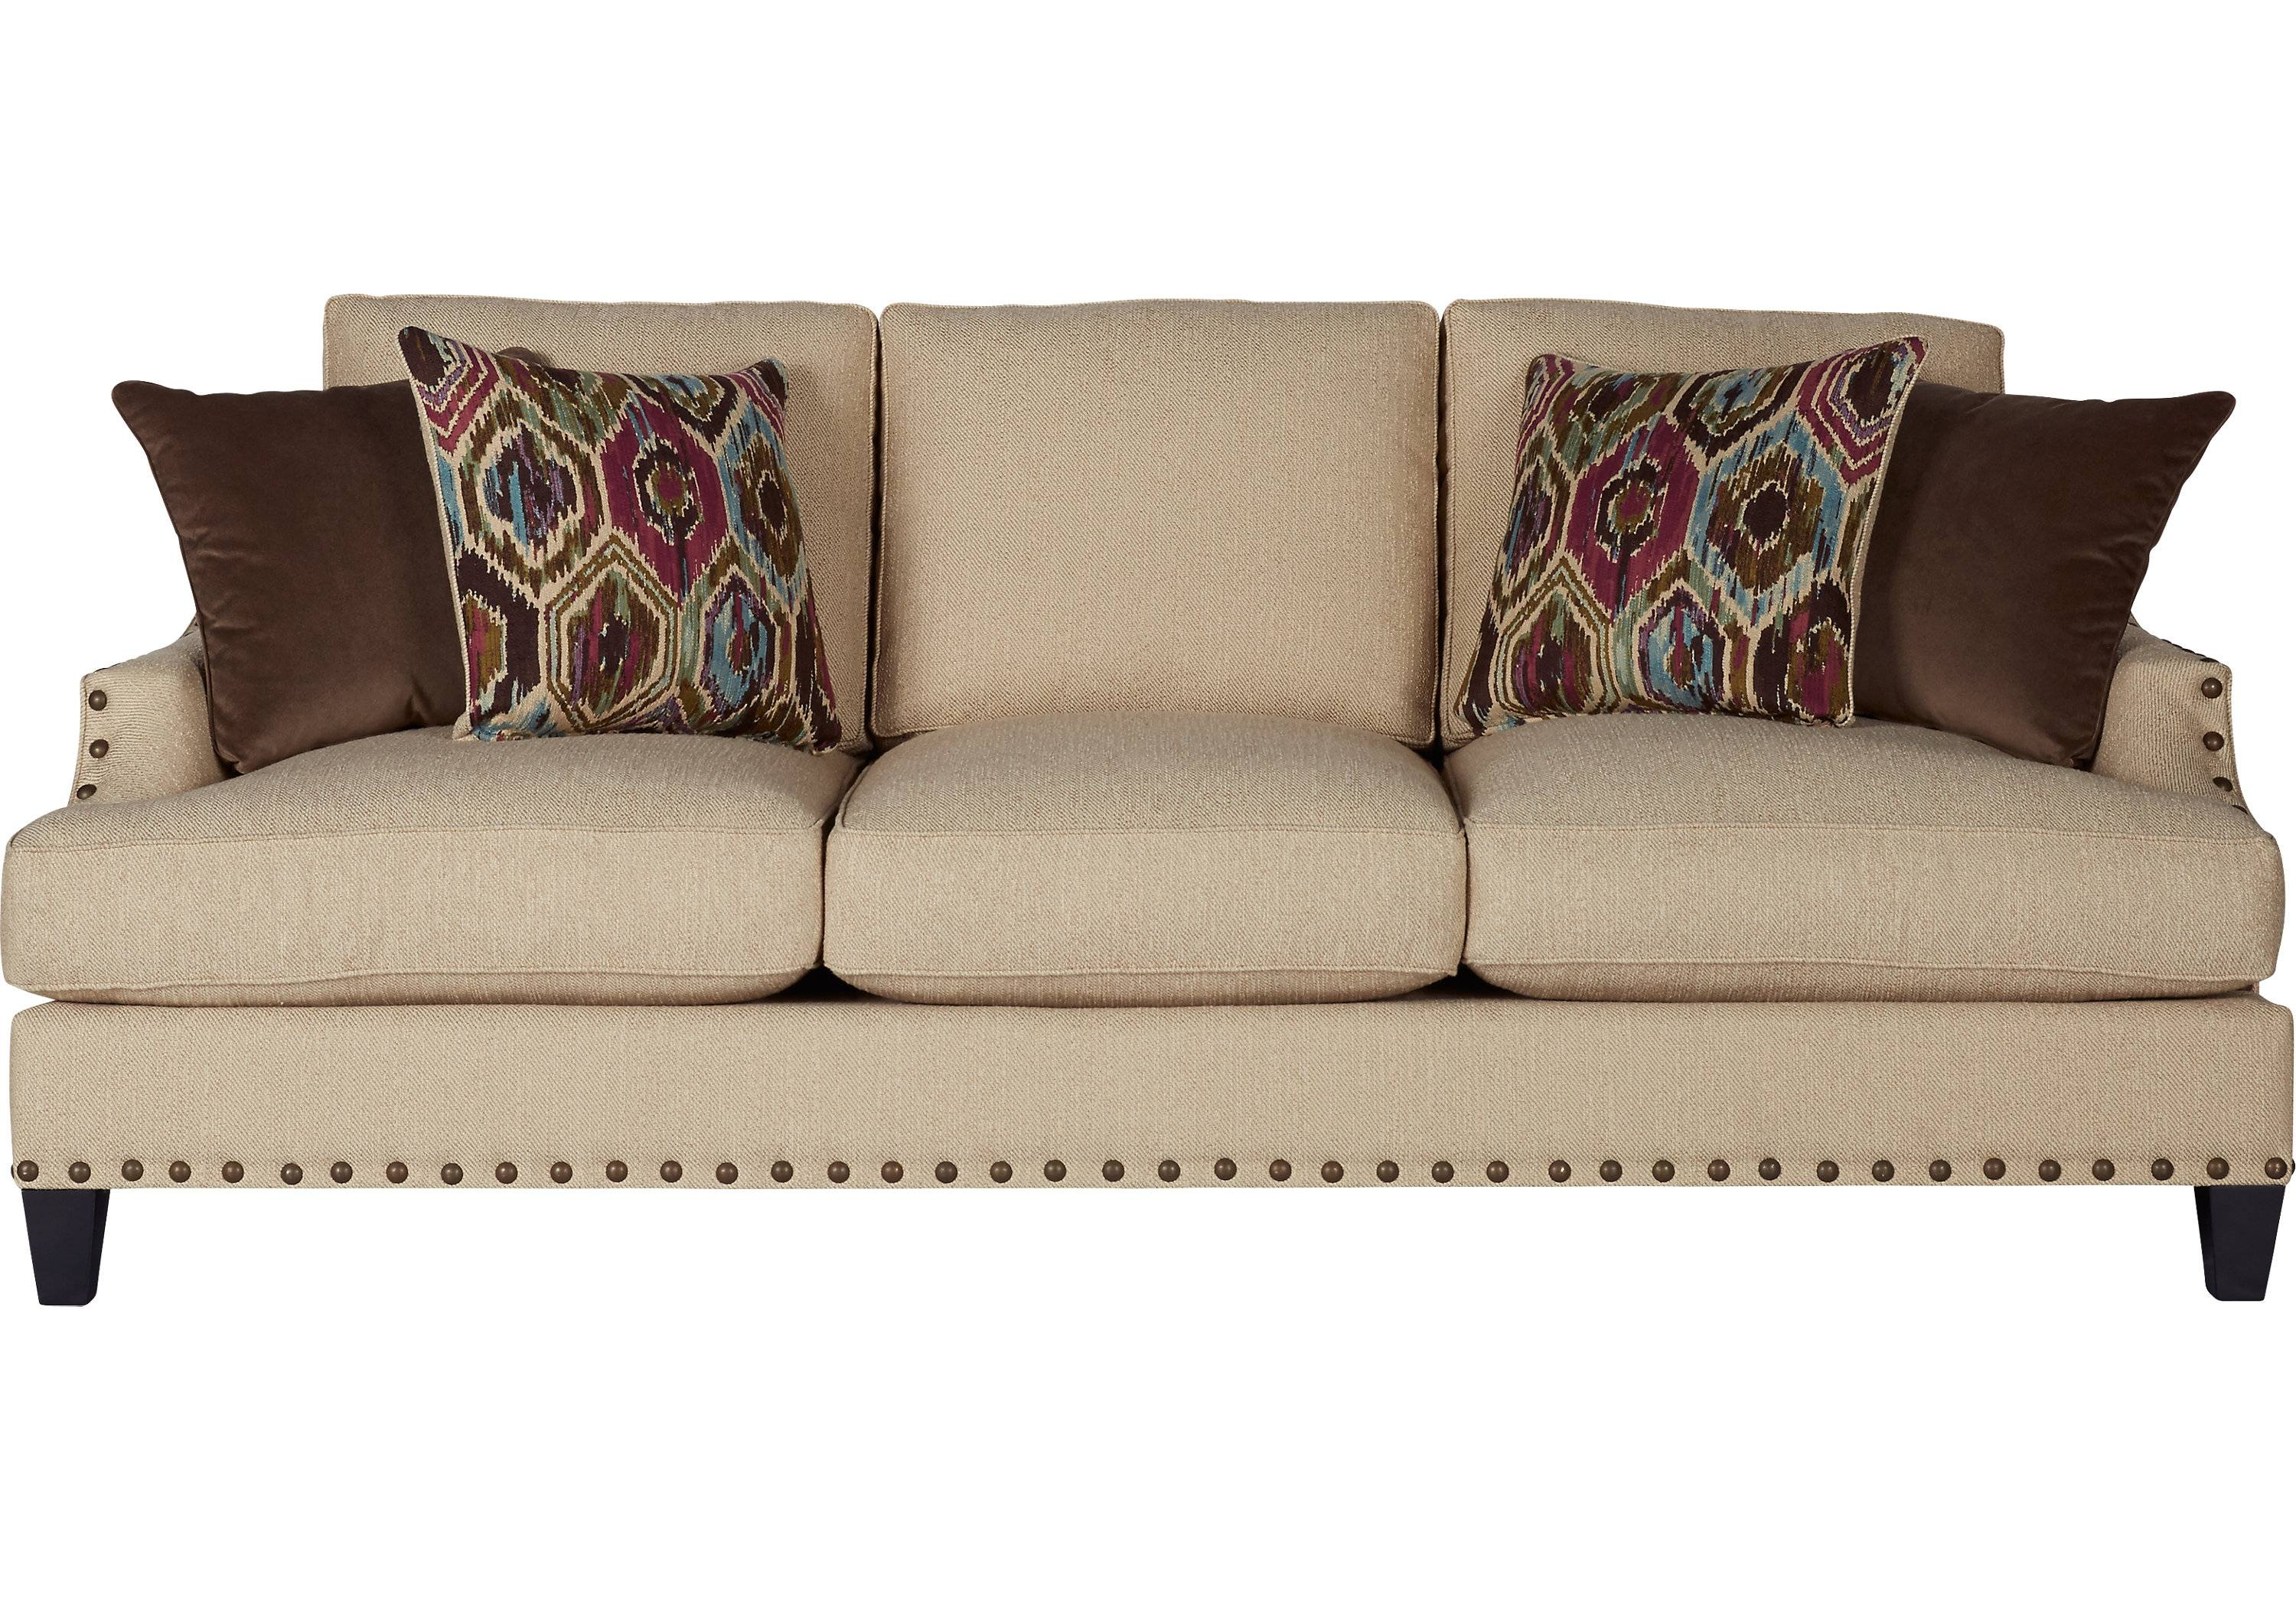 Furniture: Cindy Crawford Sectional Sofa For Elegant Living Room for Cindy Crawford Home Sectional Sofa (Image 20 of 30)